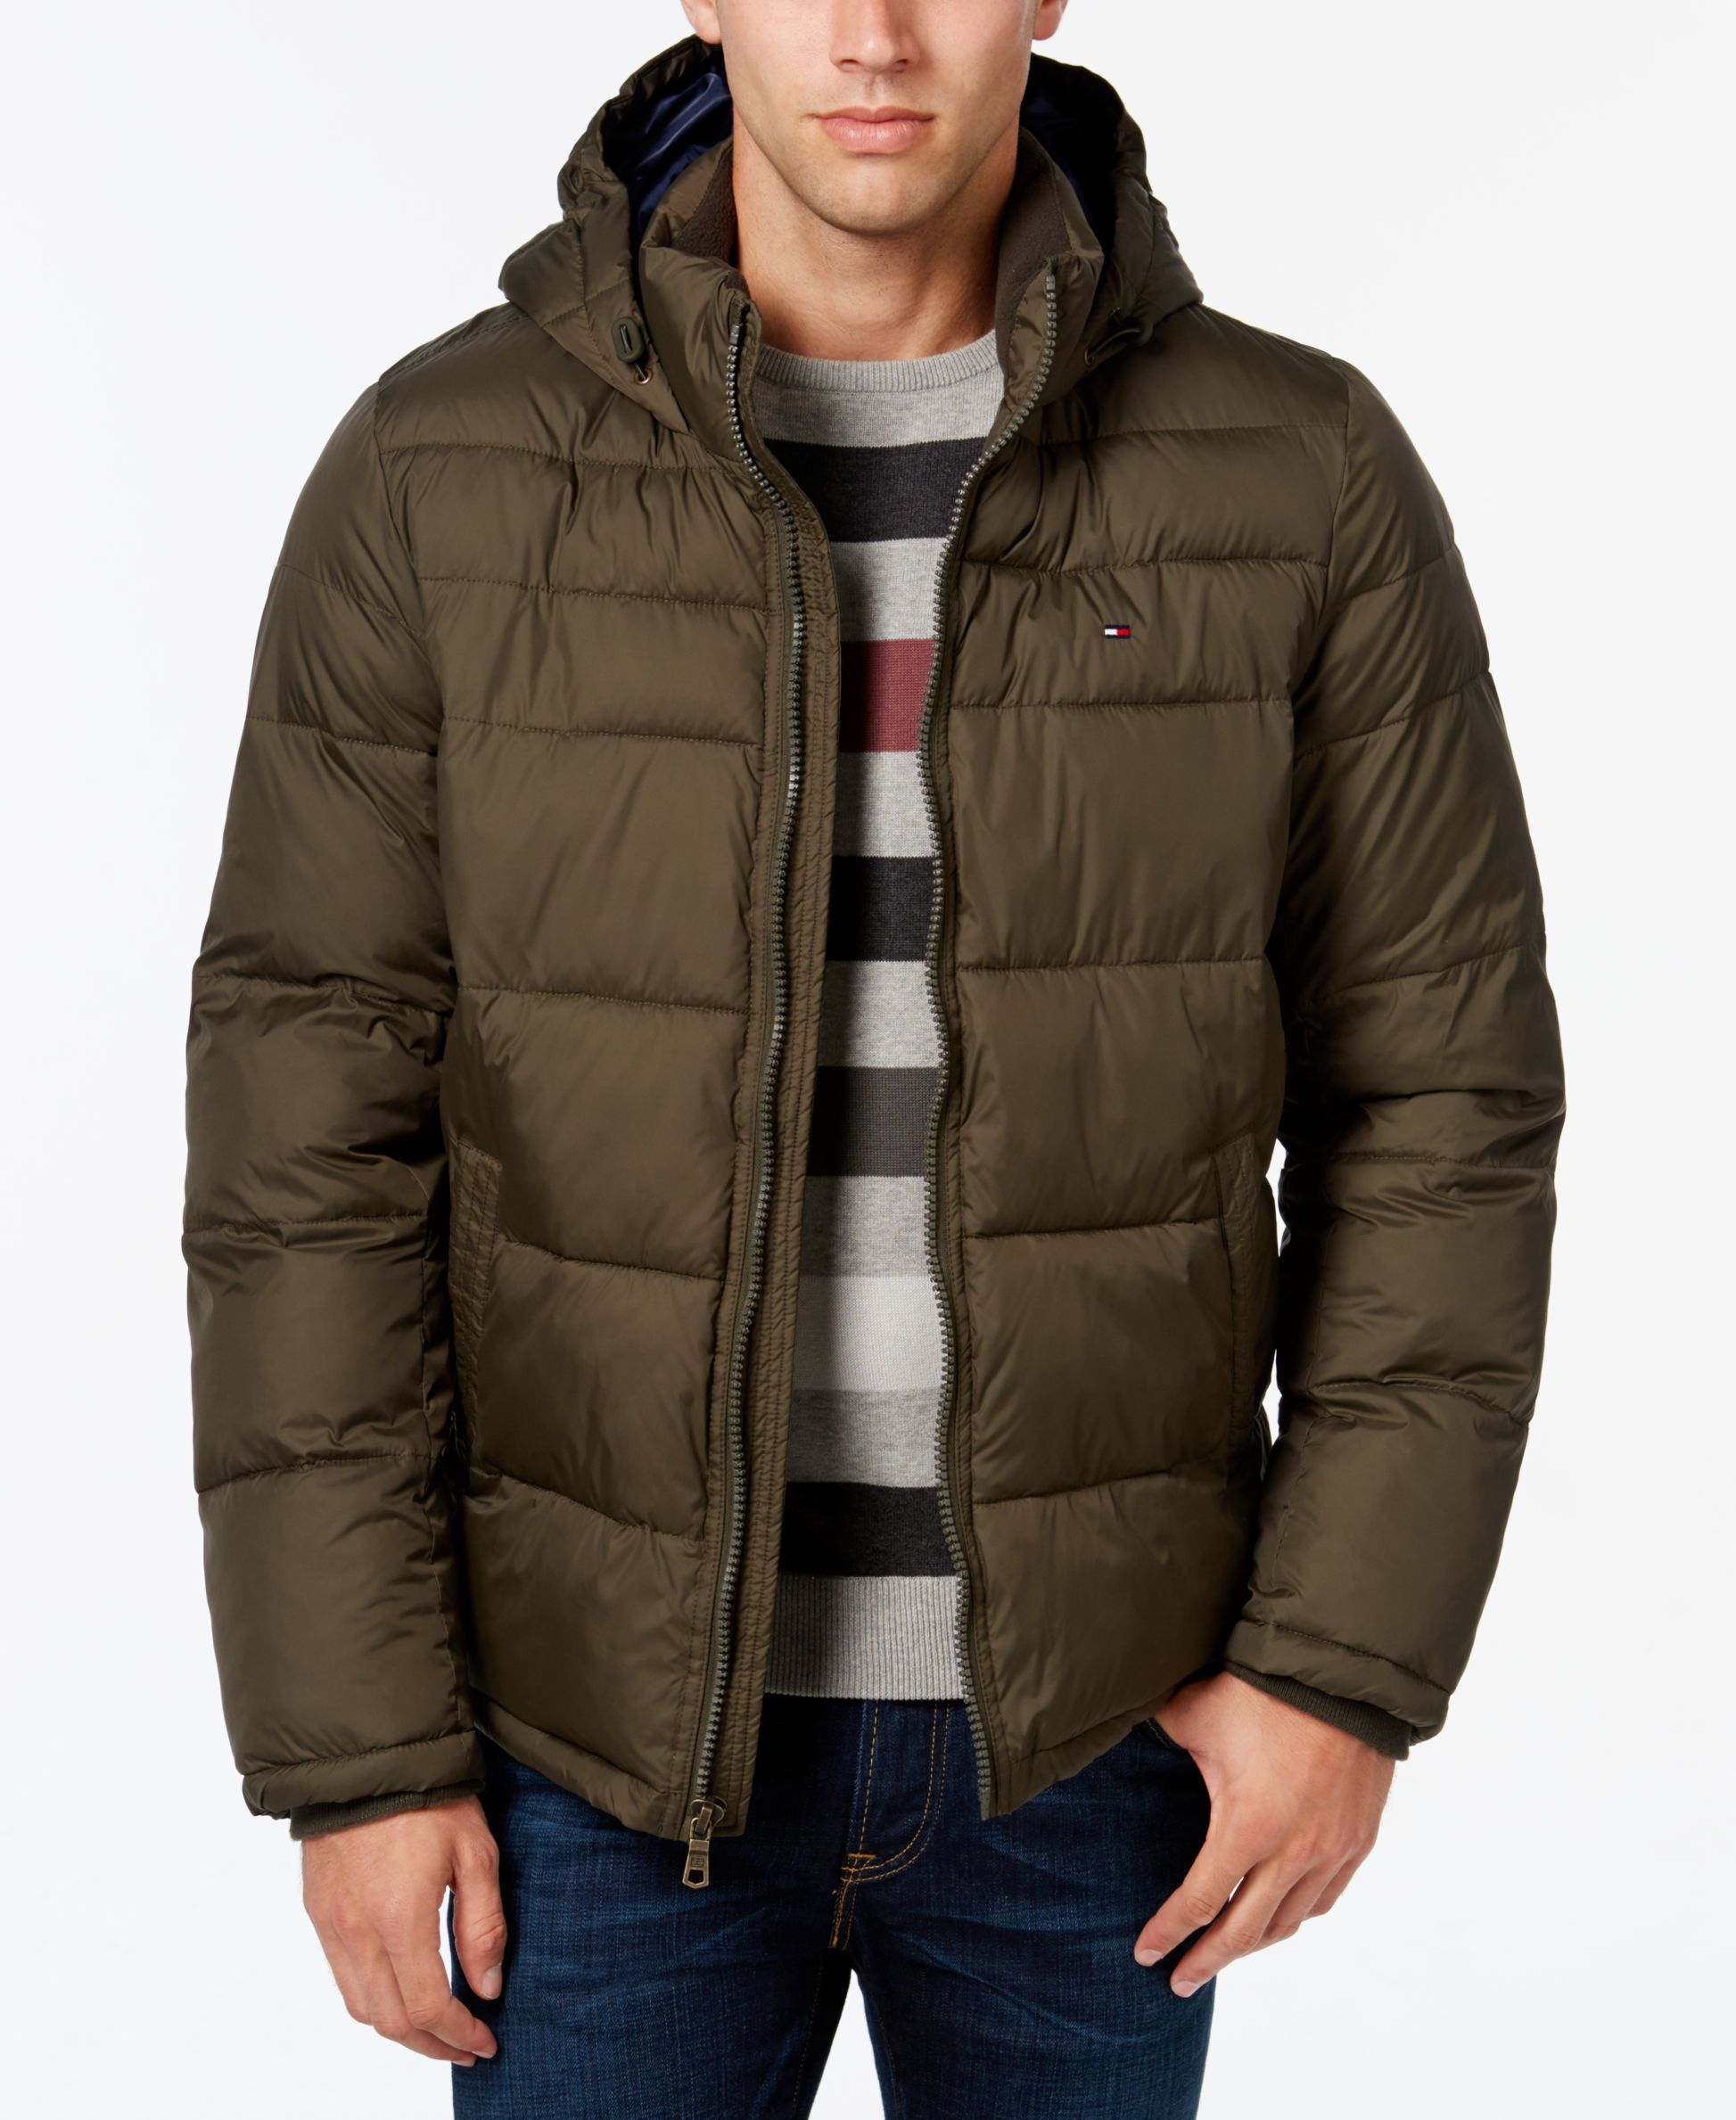 The Classic Quilted Puffer Design And Stand Collar With Faux Fleece Lining Make This Jacket From To Mens Outdoor Jackets Tommy Hilfiger Man Mens Puffer Jacket [ 2378 x 1947 Pixel ]